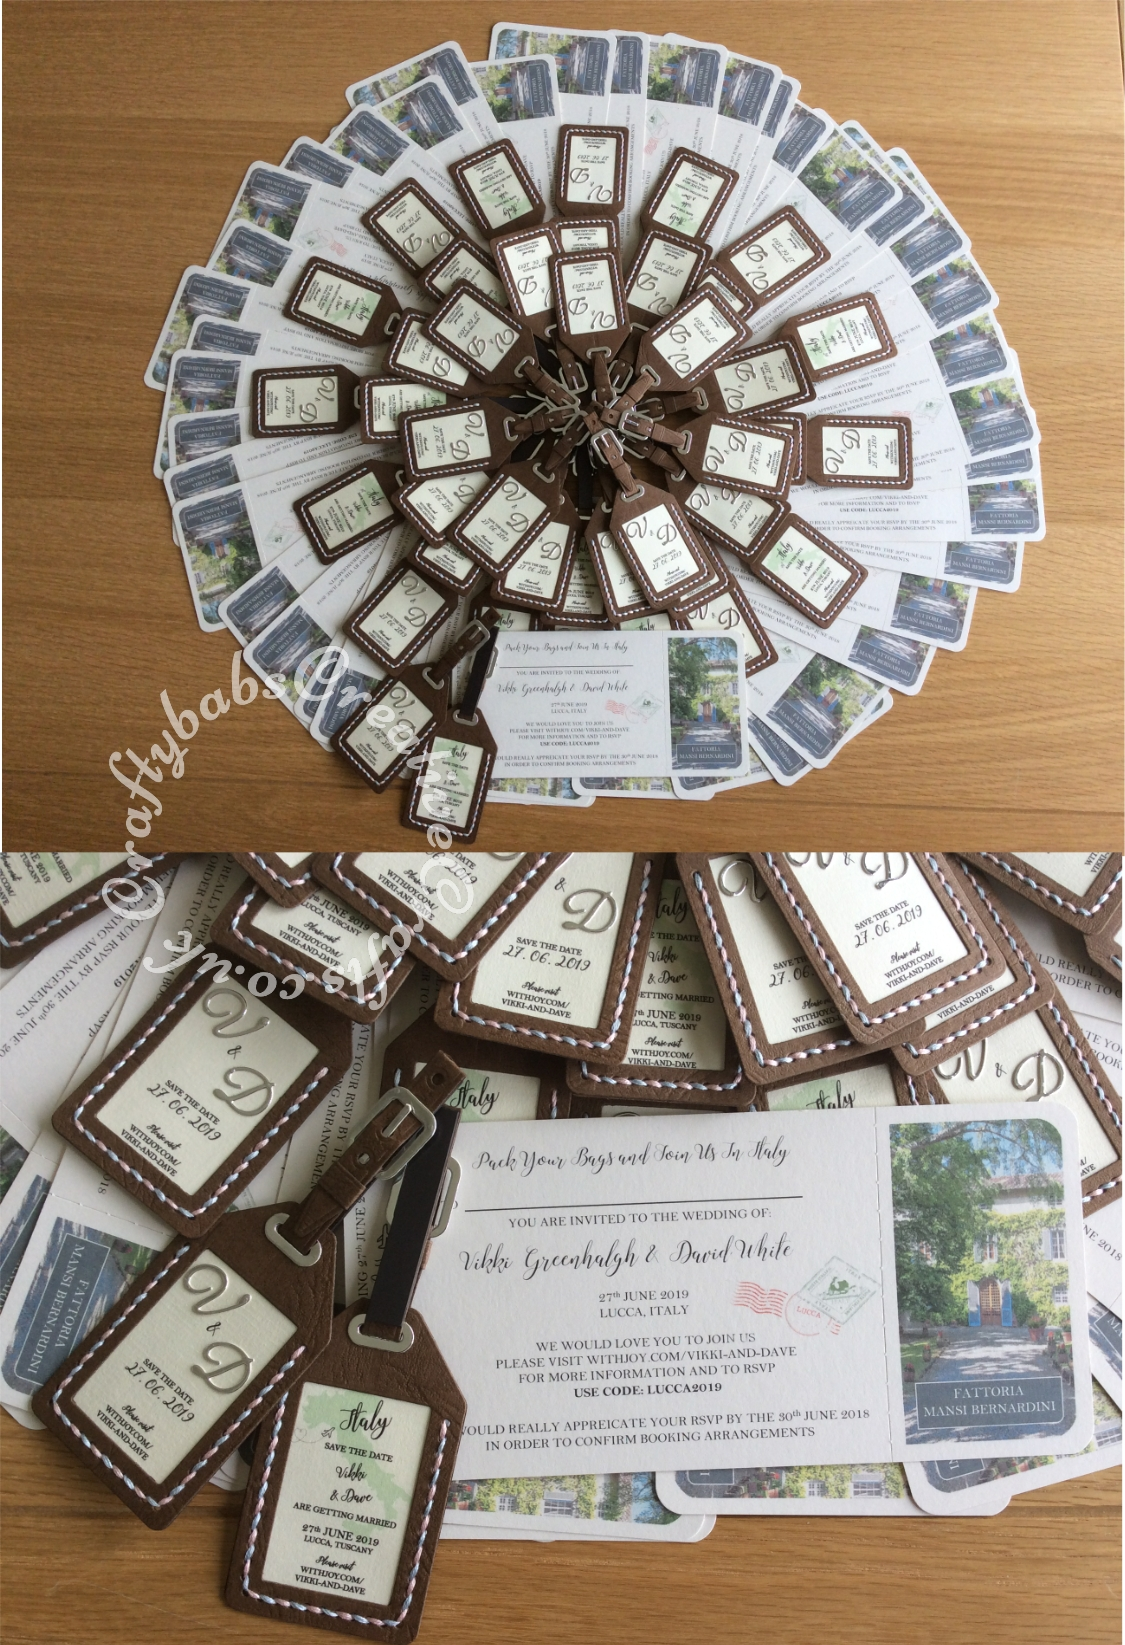 Destination Wedding Save the date fridge magnet luggage tags and boarding passes. Luggage tags made using X cut 9 pc large die set LUGGAGE TAGS, Britannia dies uppercase alphabet dies used for monograms, tag insert printed. Tag halves sewn together using pink and blue embroidery thread. Boarding passes created using Craft arttist professional software then printed and perforated using a perforating blade in my guillotine and a corner rounder punch to finish off. - craftybabscreativecrafts.co.uk